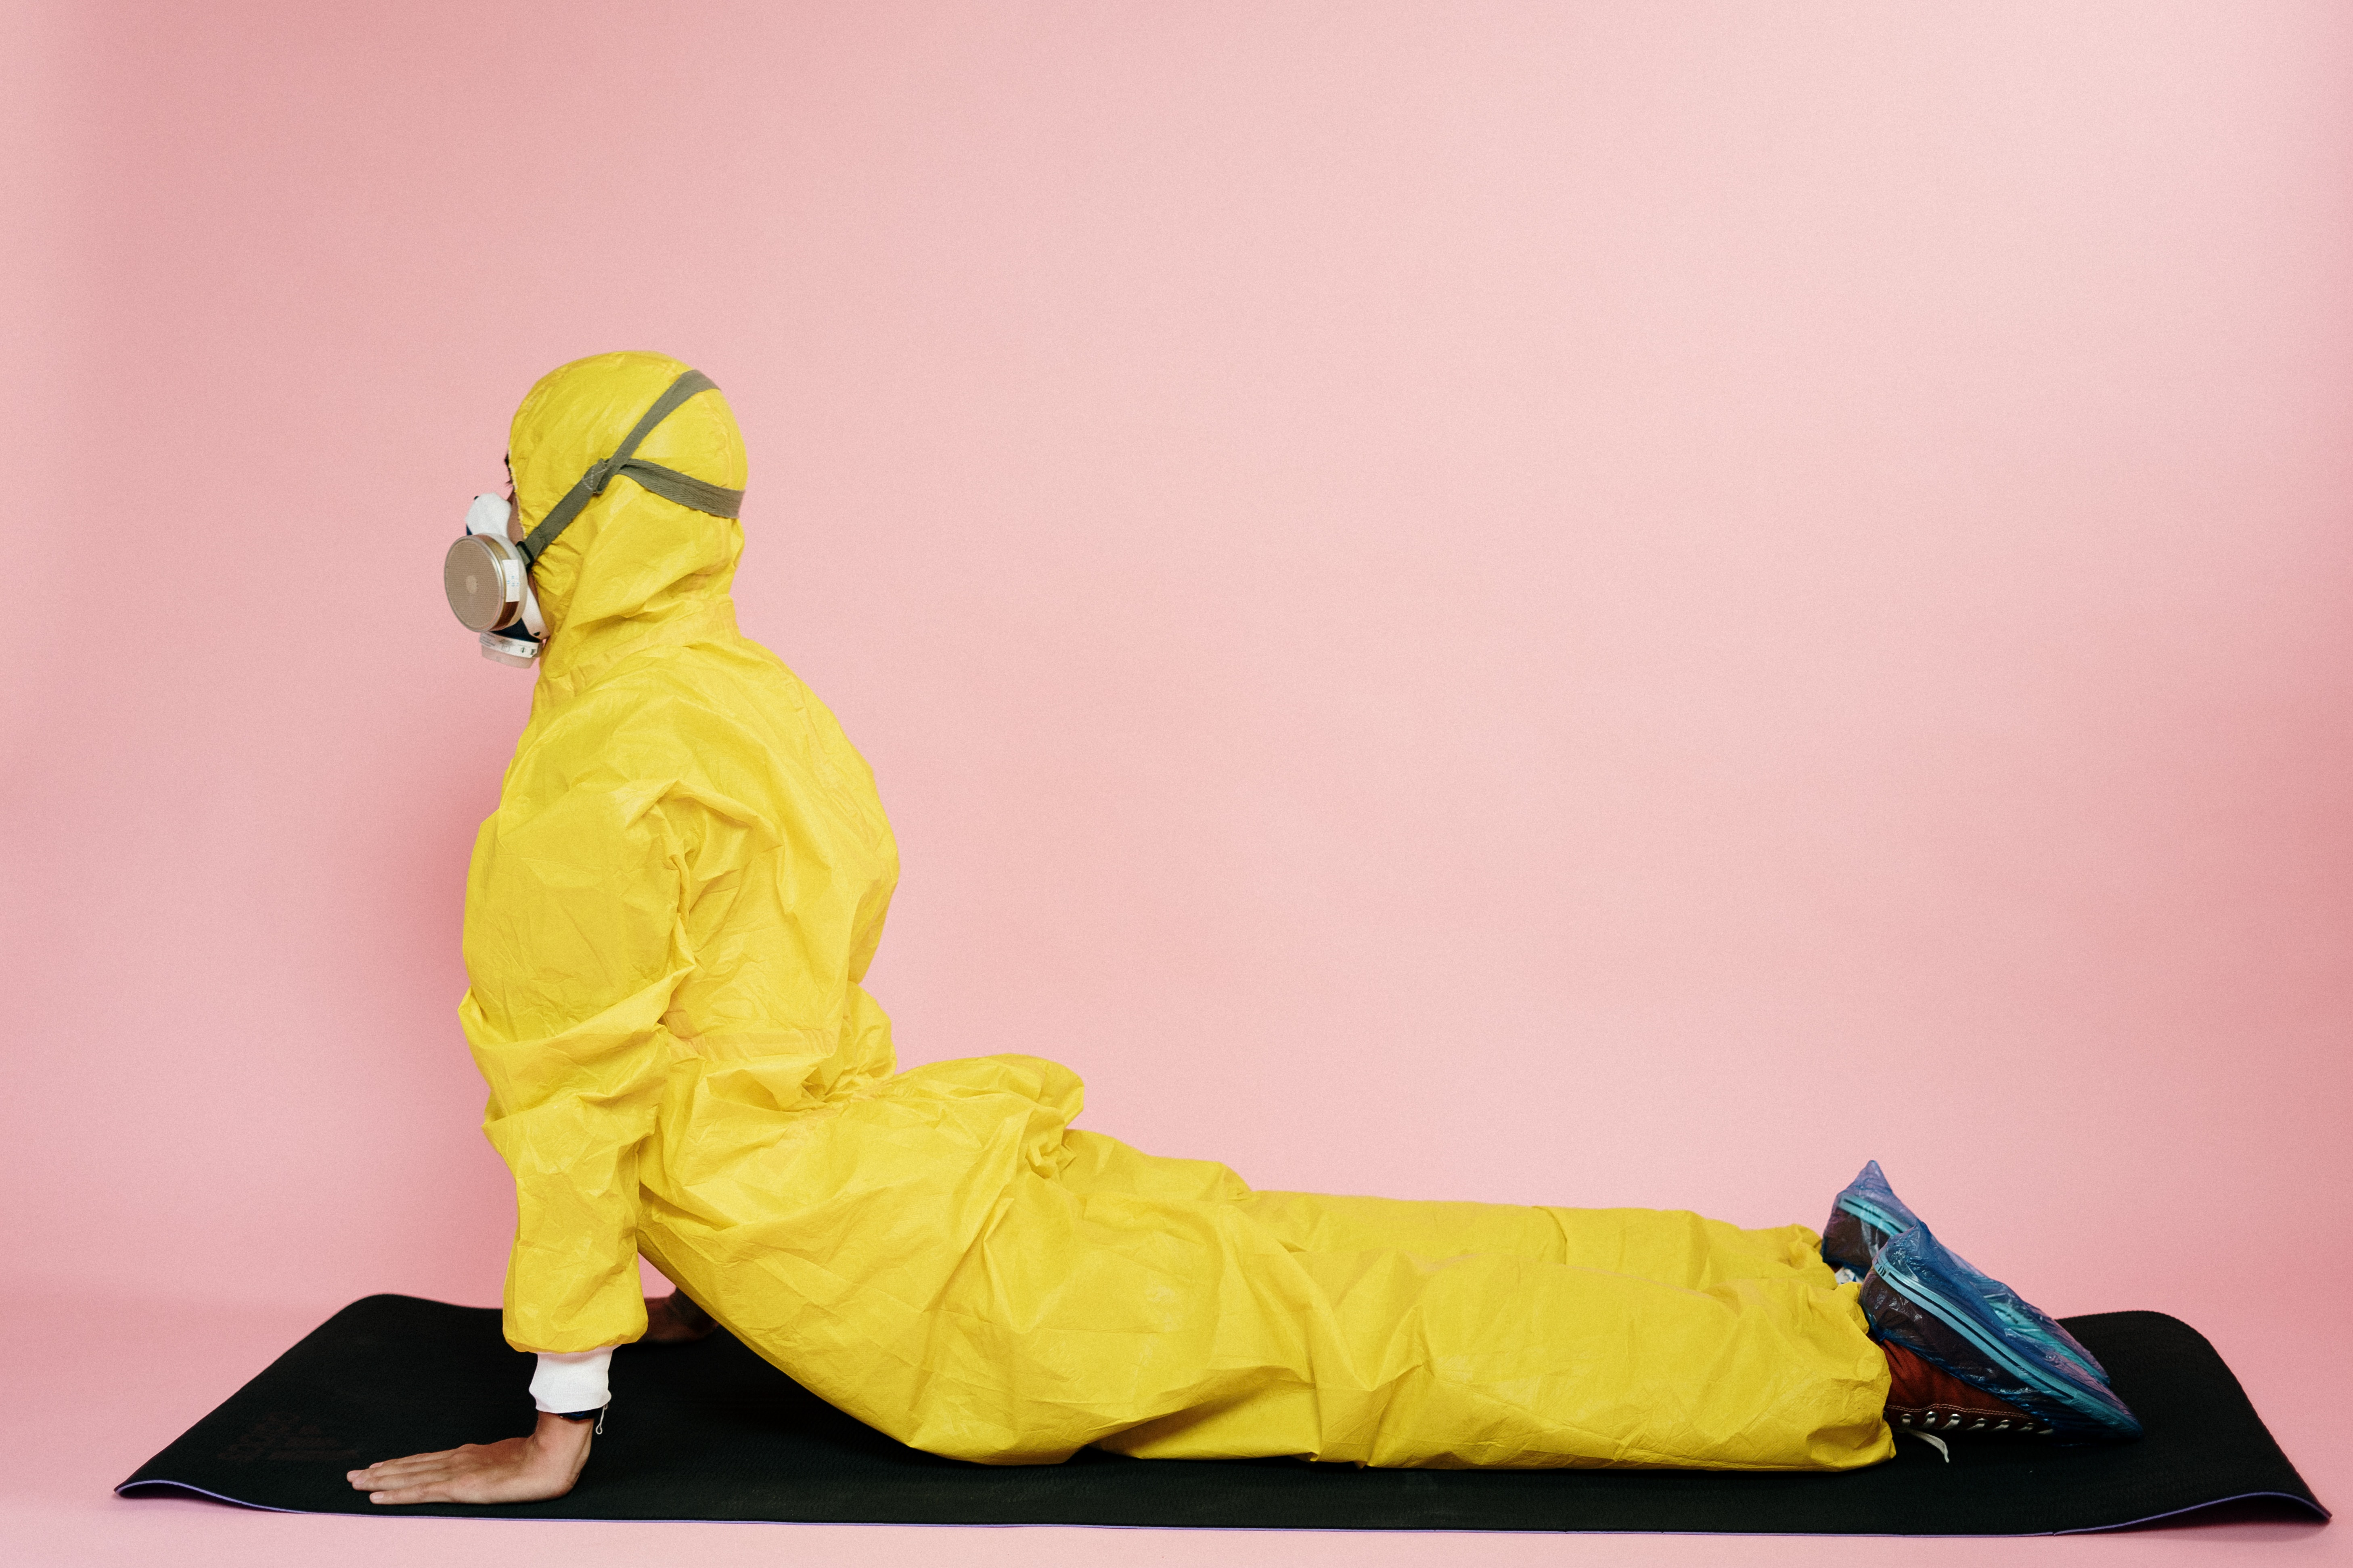 man-in-yellow-protective-suit-stretching-3951375